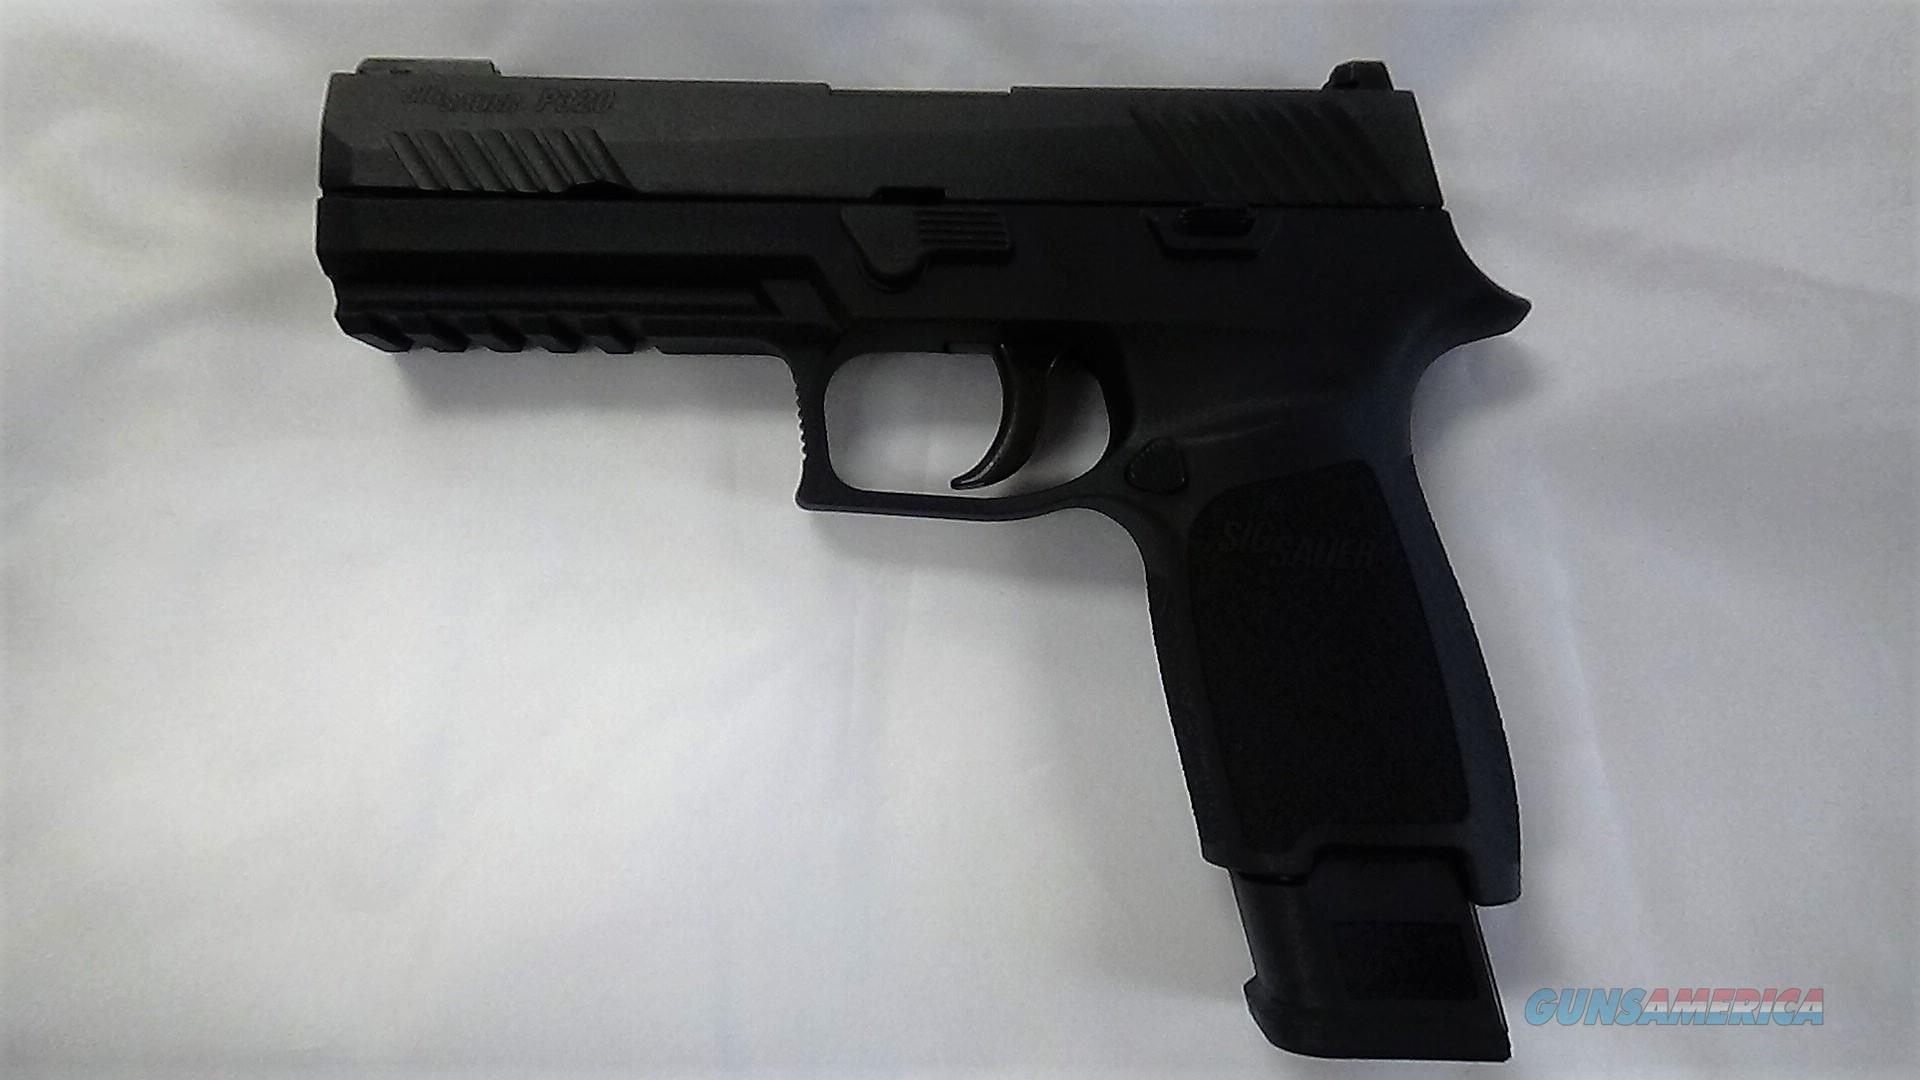 SIG Sauer P320 Tac Ops 9MM Luger 21 Round NIB  Guns > Pistols > Sig - Sauer/Sigarms Pistols > P320